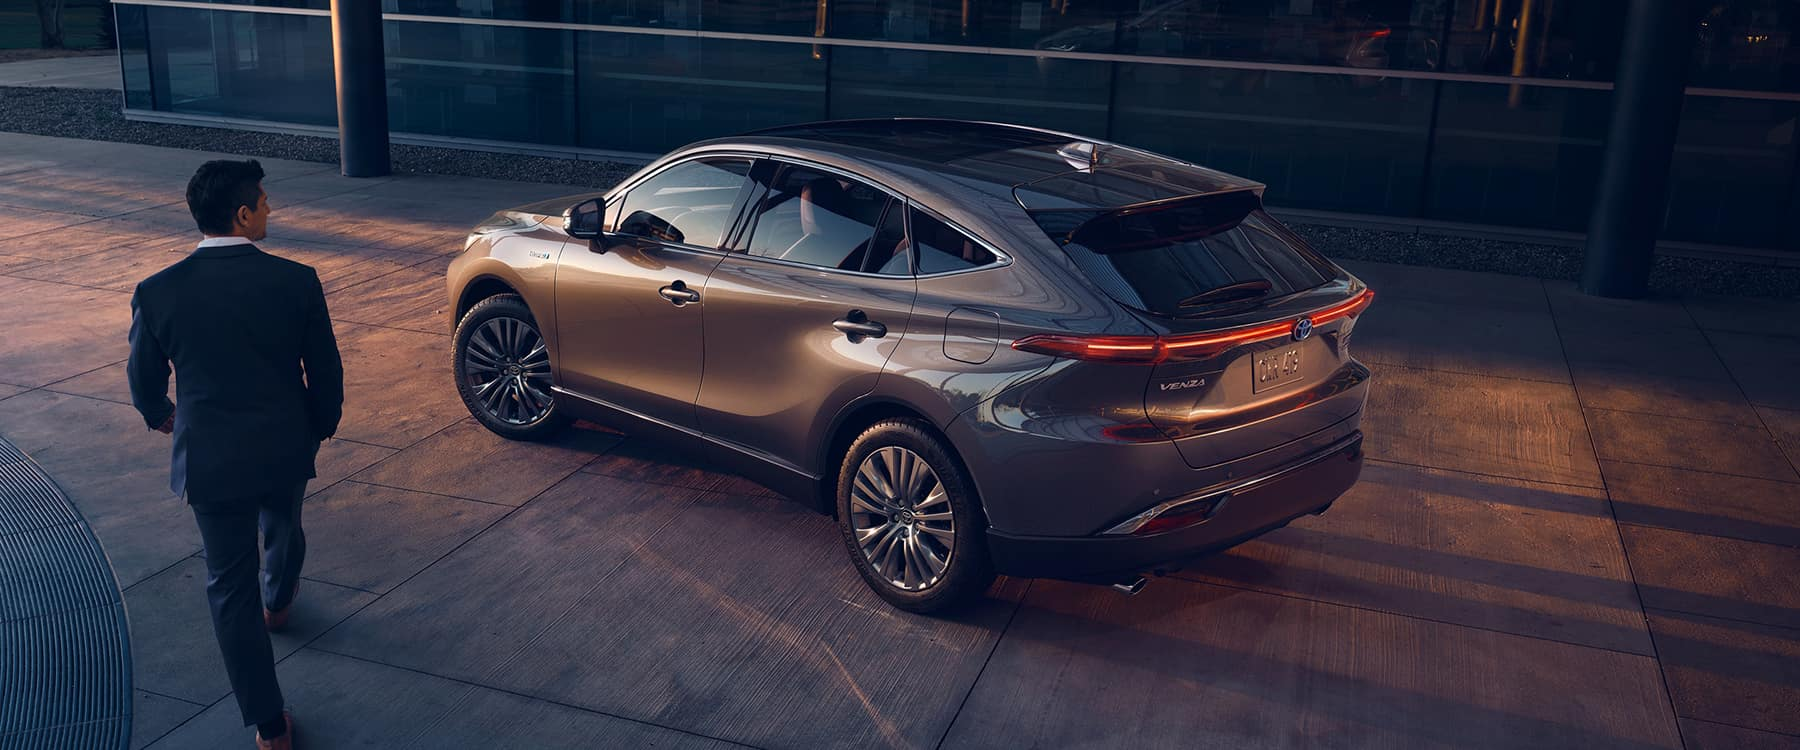 2021 Toyota Venza parked on side with man walking by